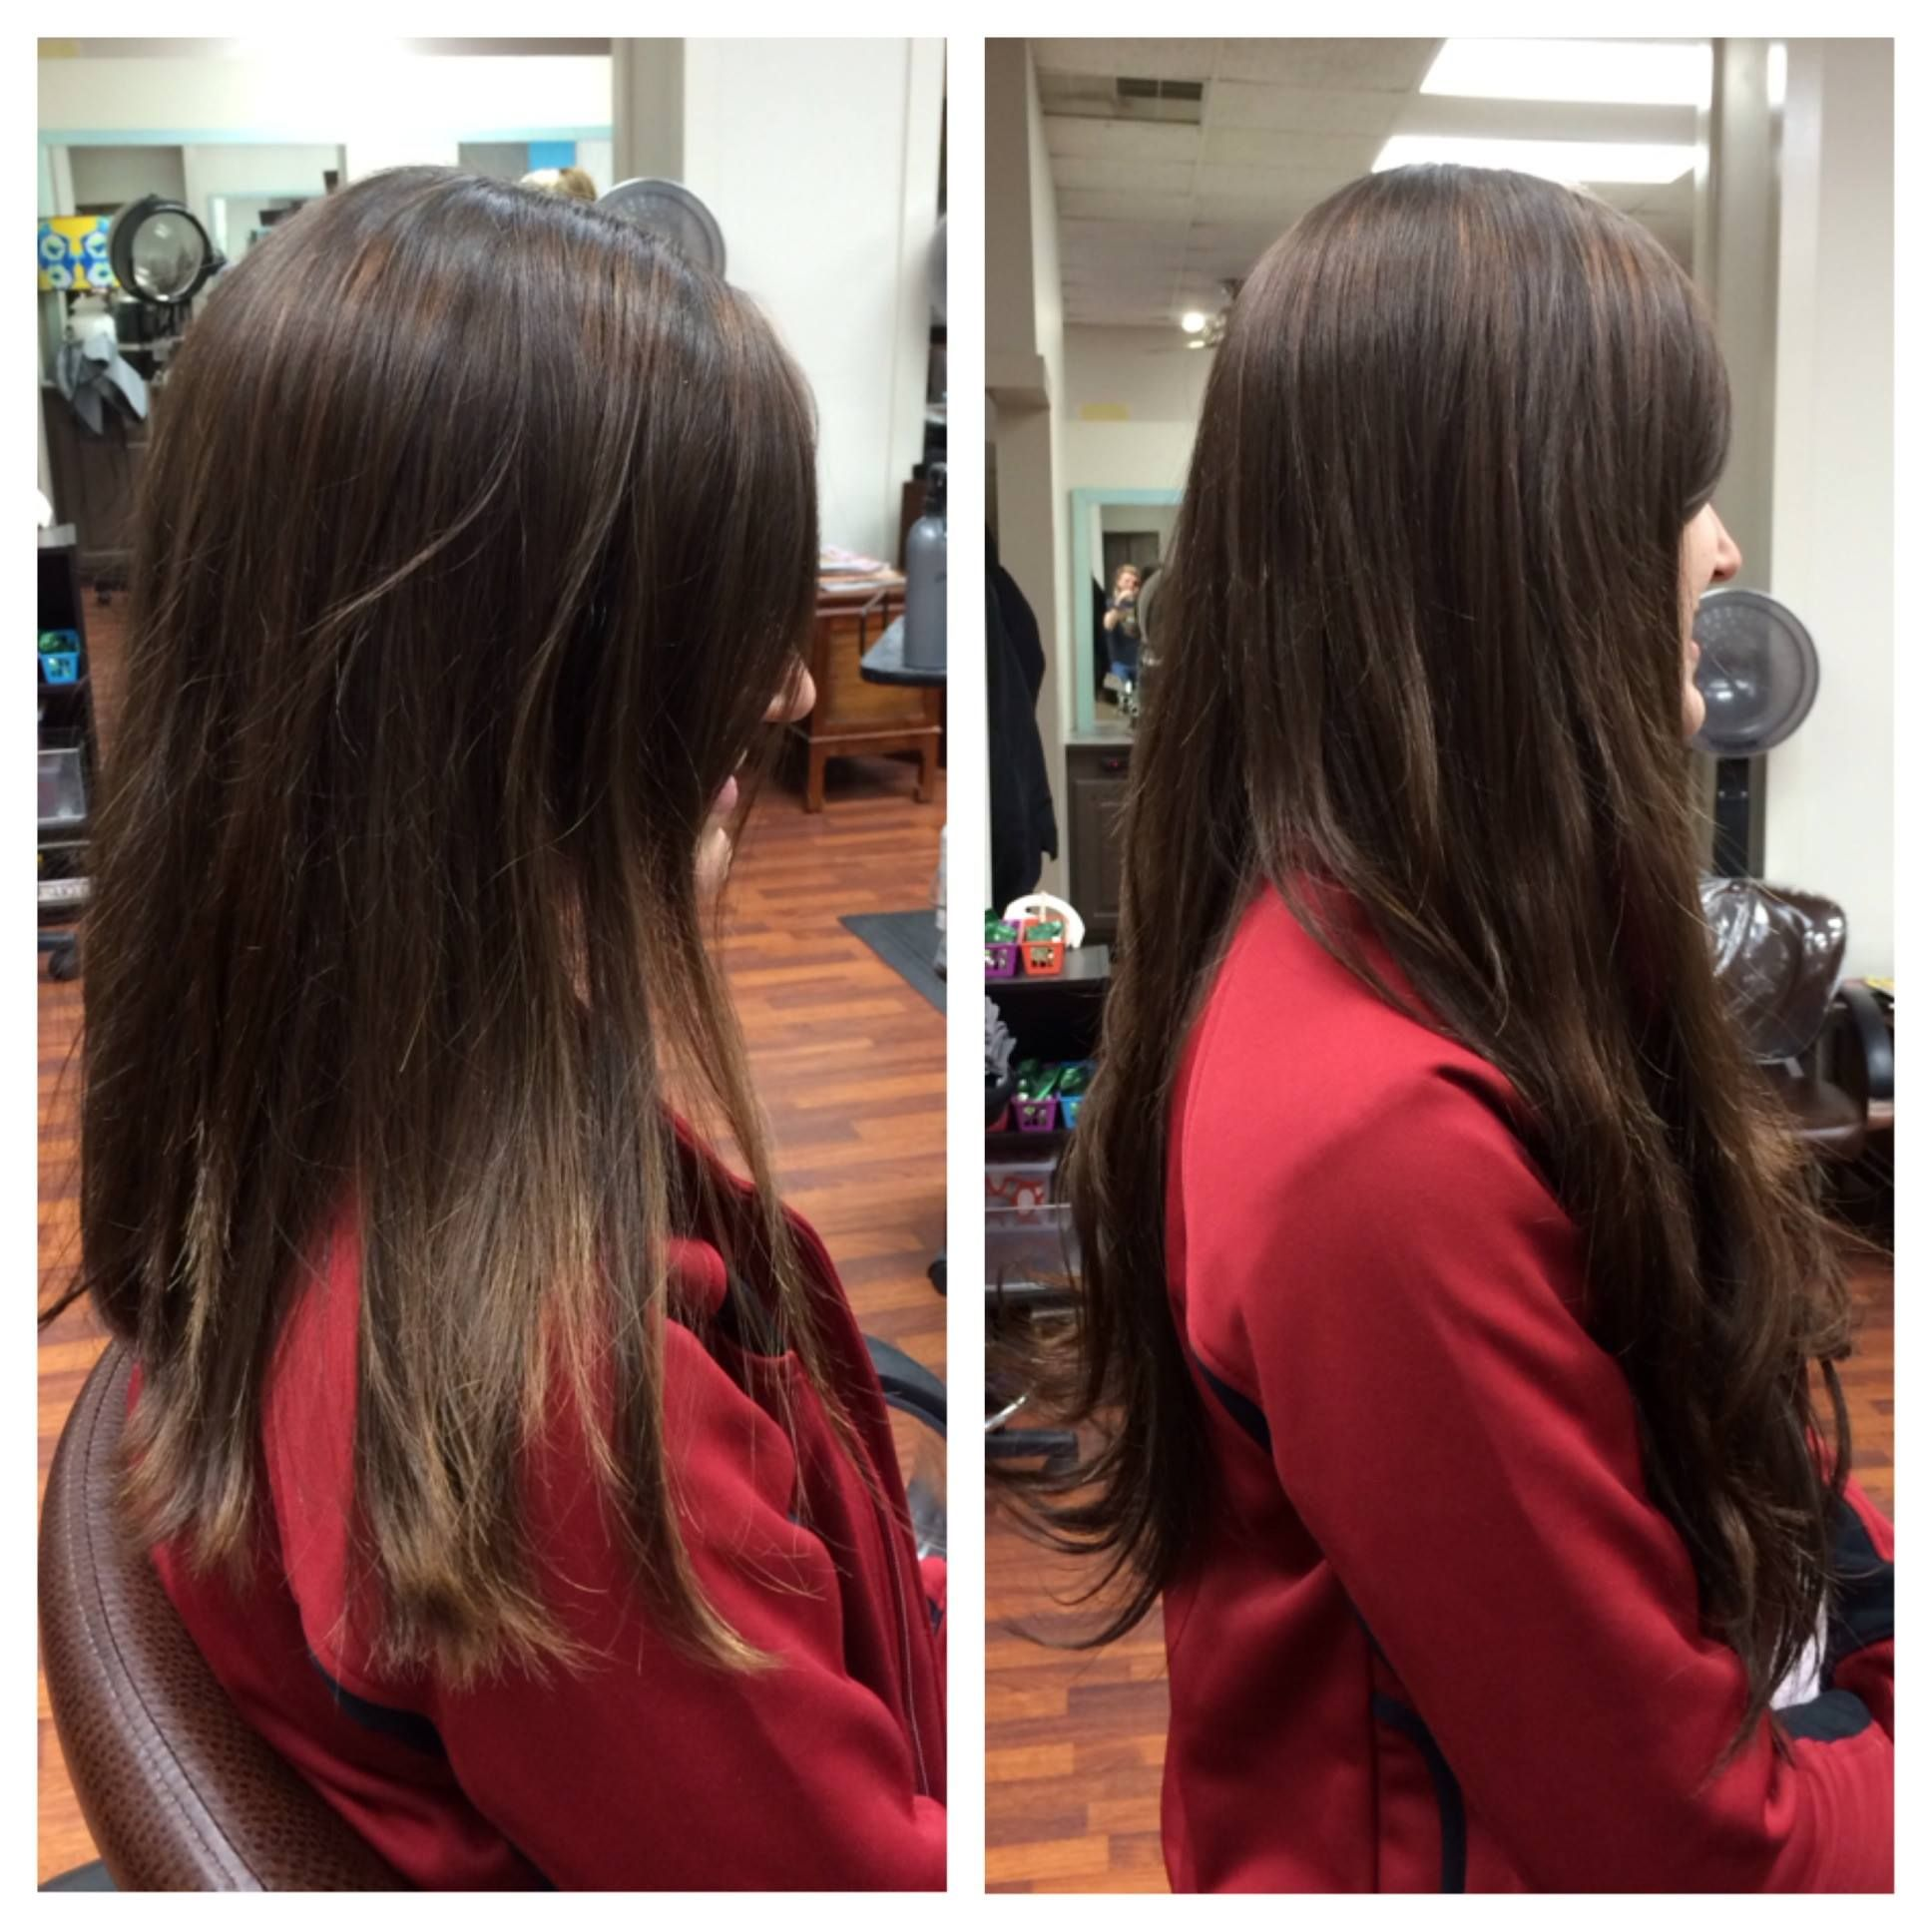 Before And After Extensions Lex Moore Style House Salon Nashville Tn Panache Hair Salon Florence Sc Long Hair Styles Hair Styles Hair